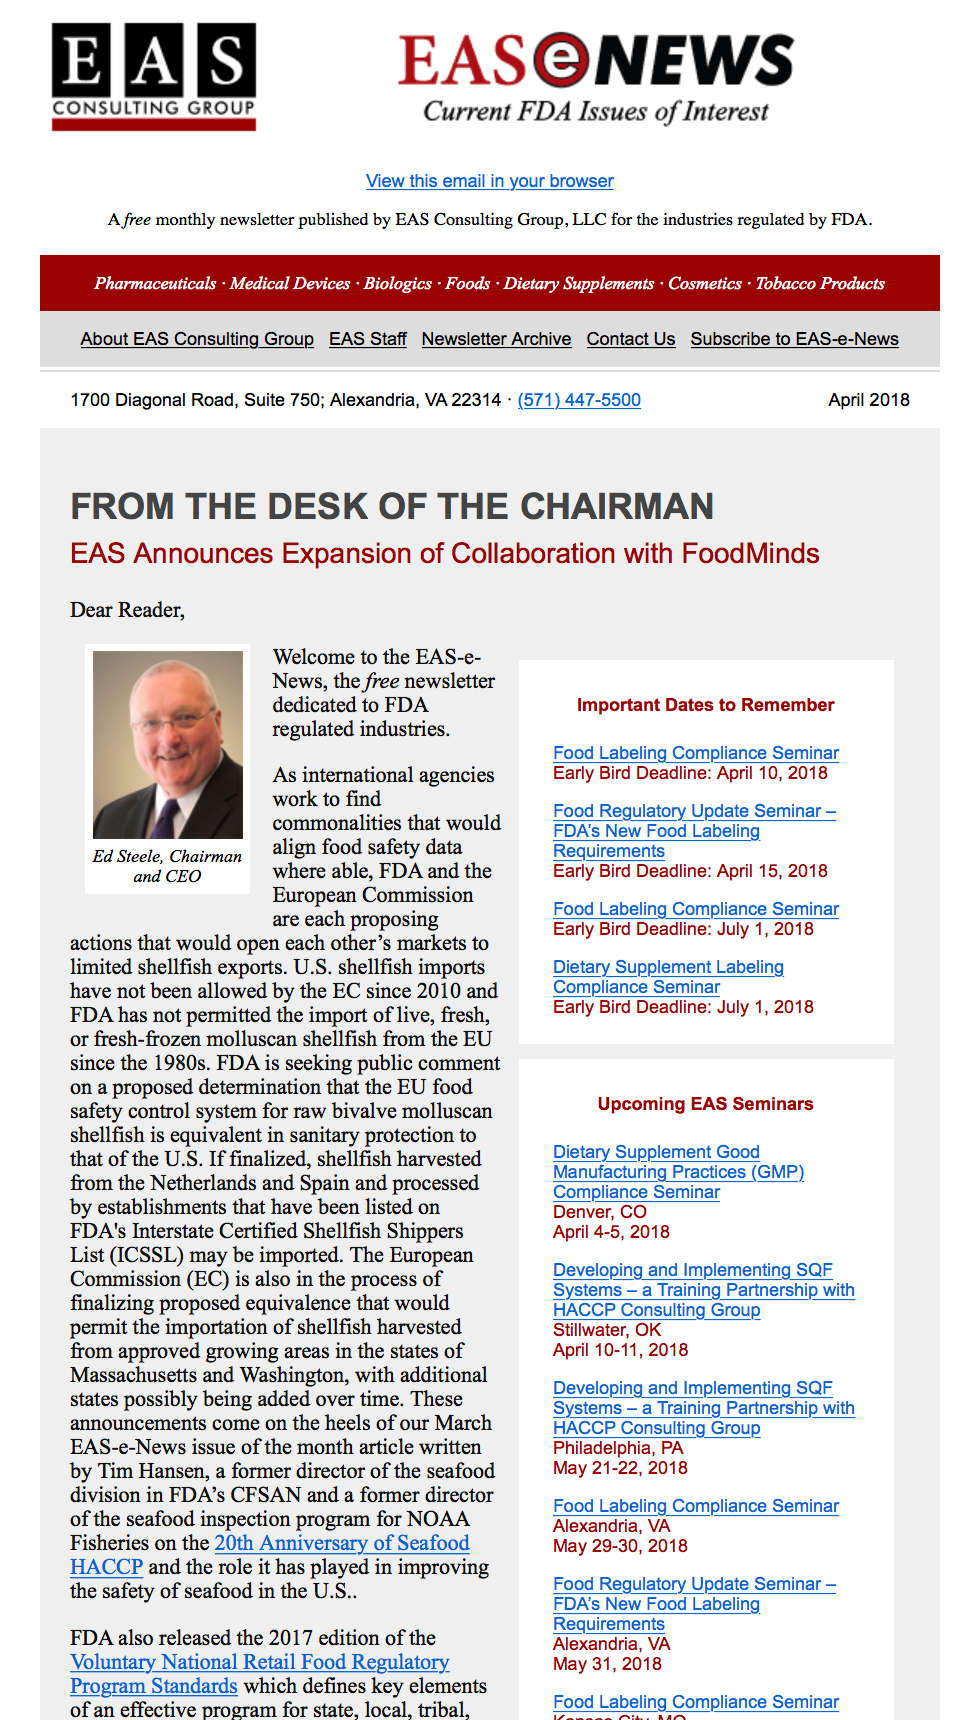 EAS-e-News April 2018